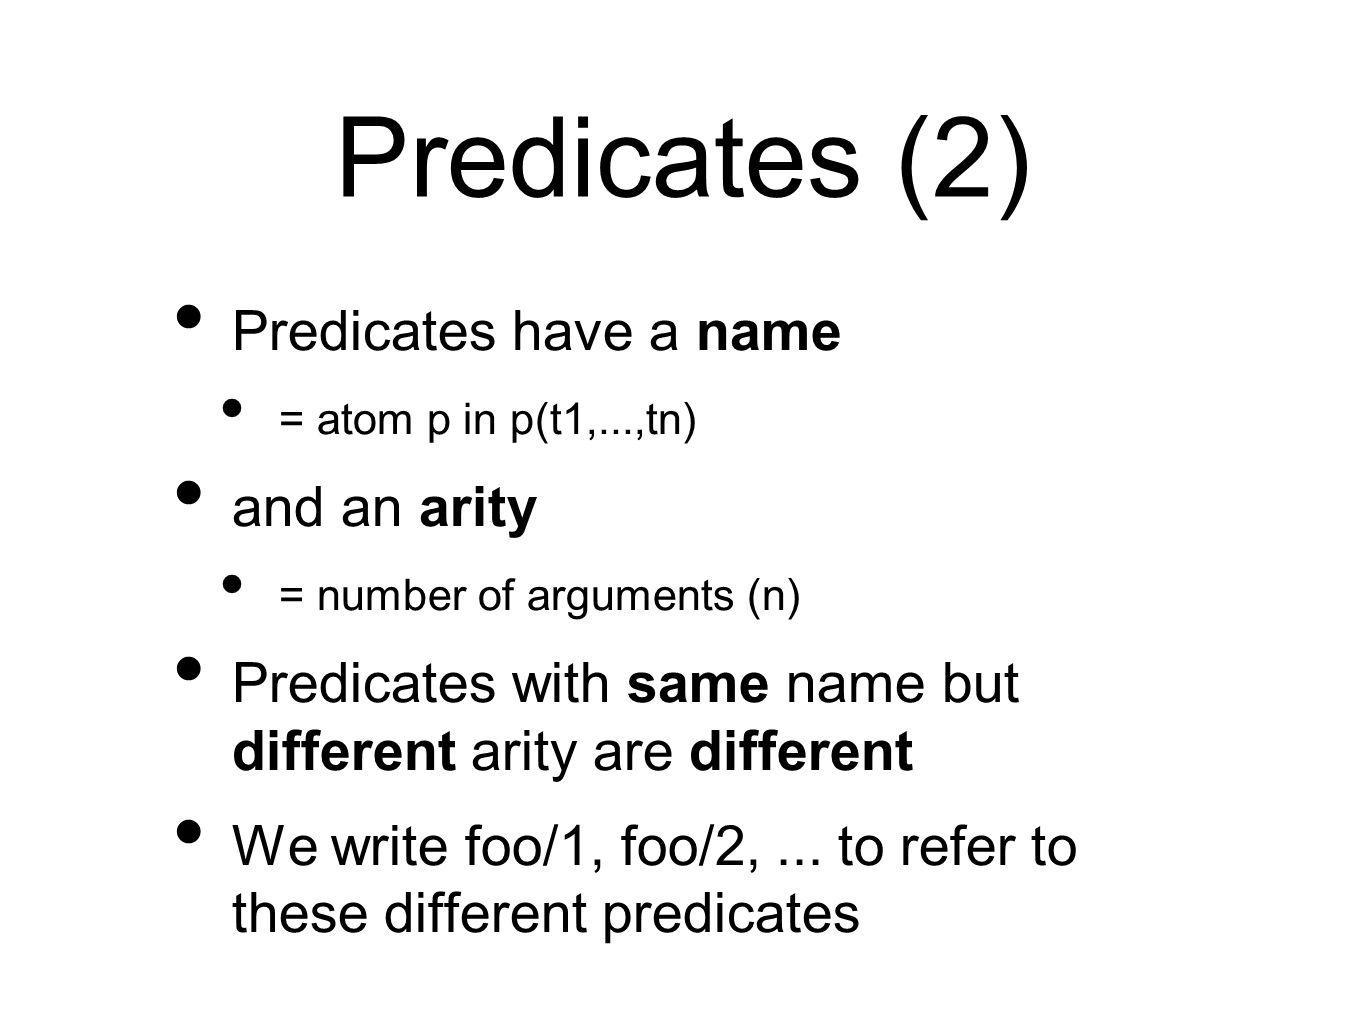 Predicates (2) Predicates have a name = atom p in p(t1,...,tn) and an arity = number of arguments (n) Predicates with same name but different arity are different We write foo/1, foo/2,...